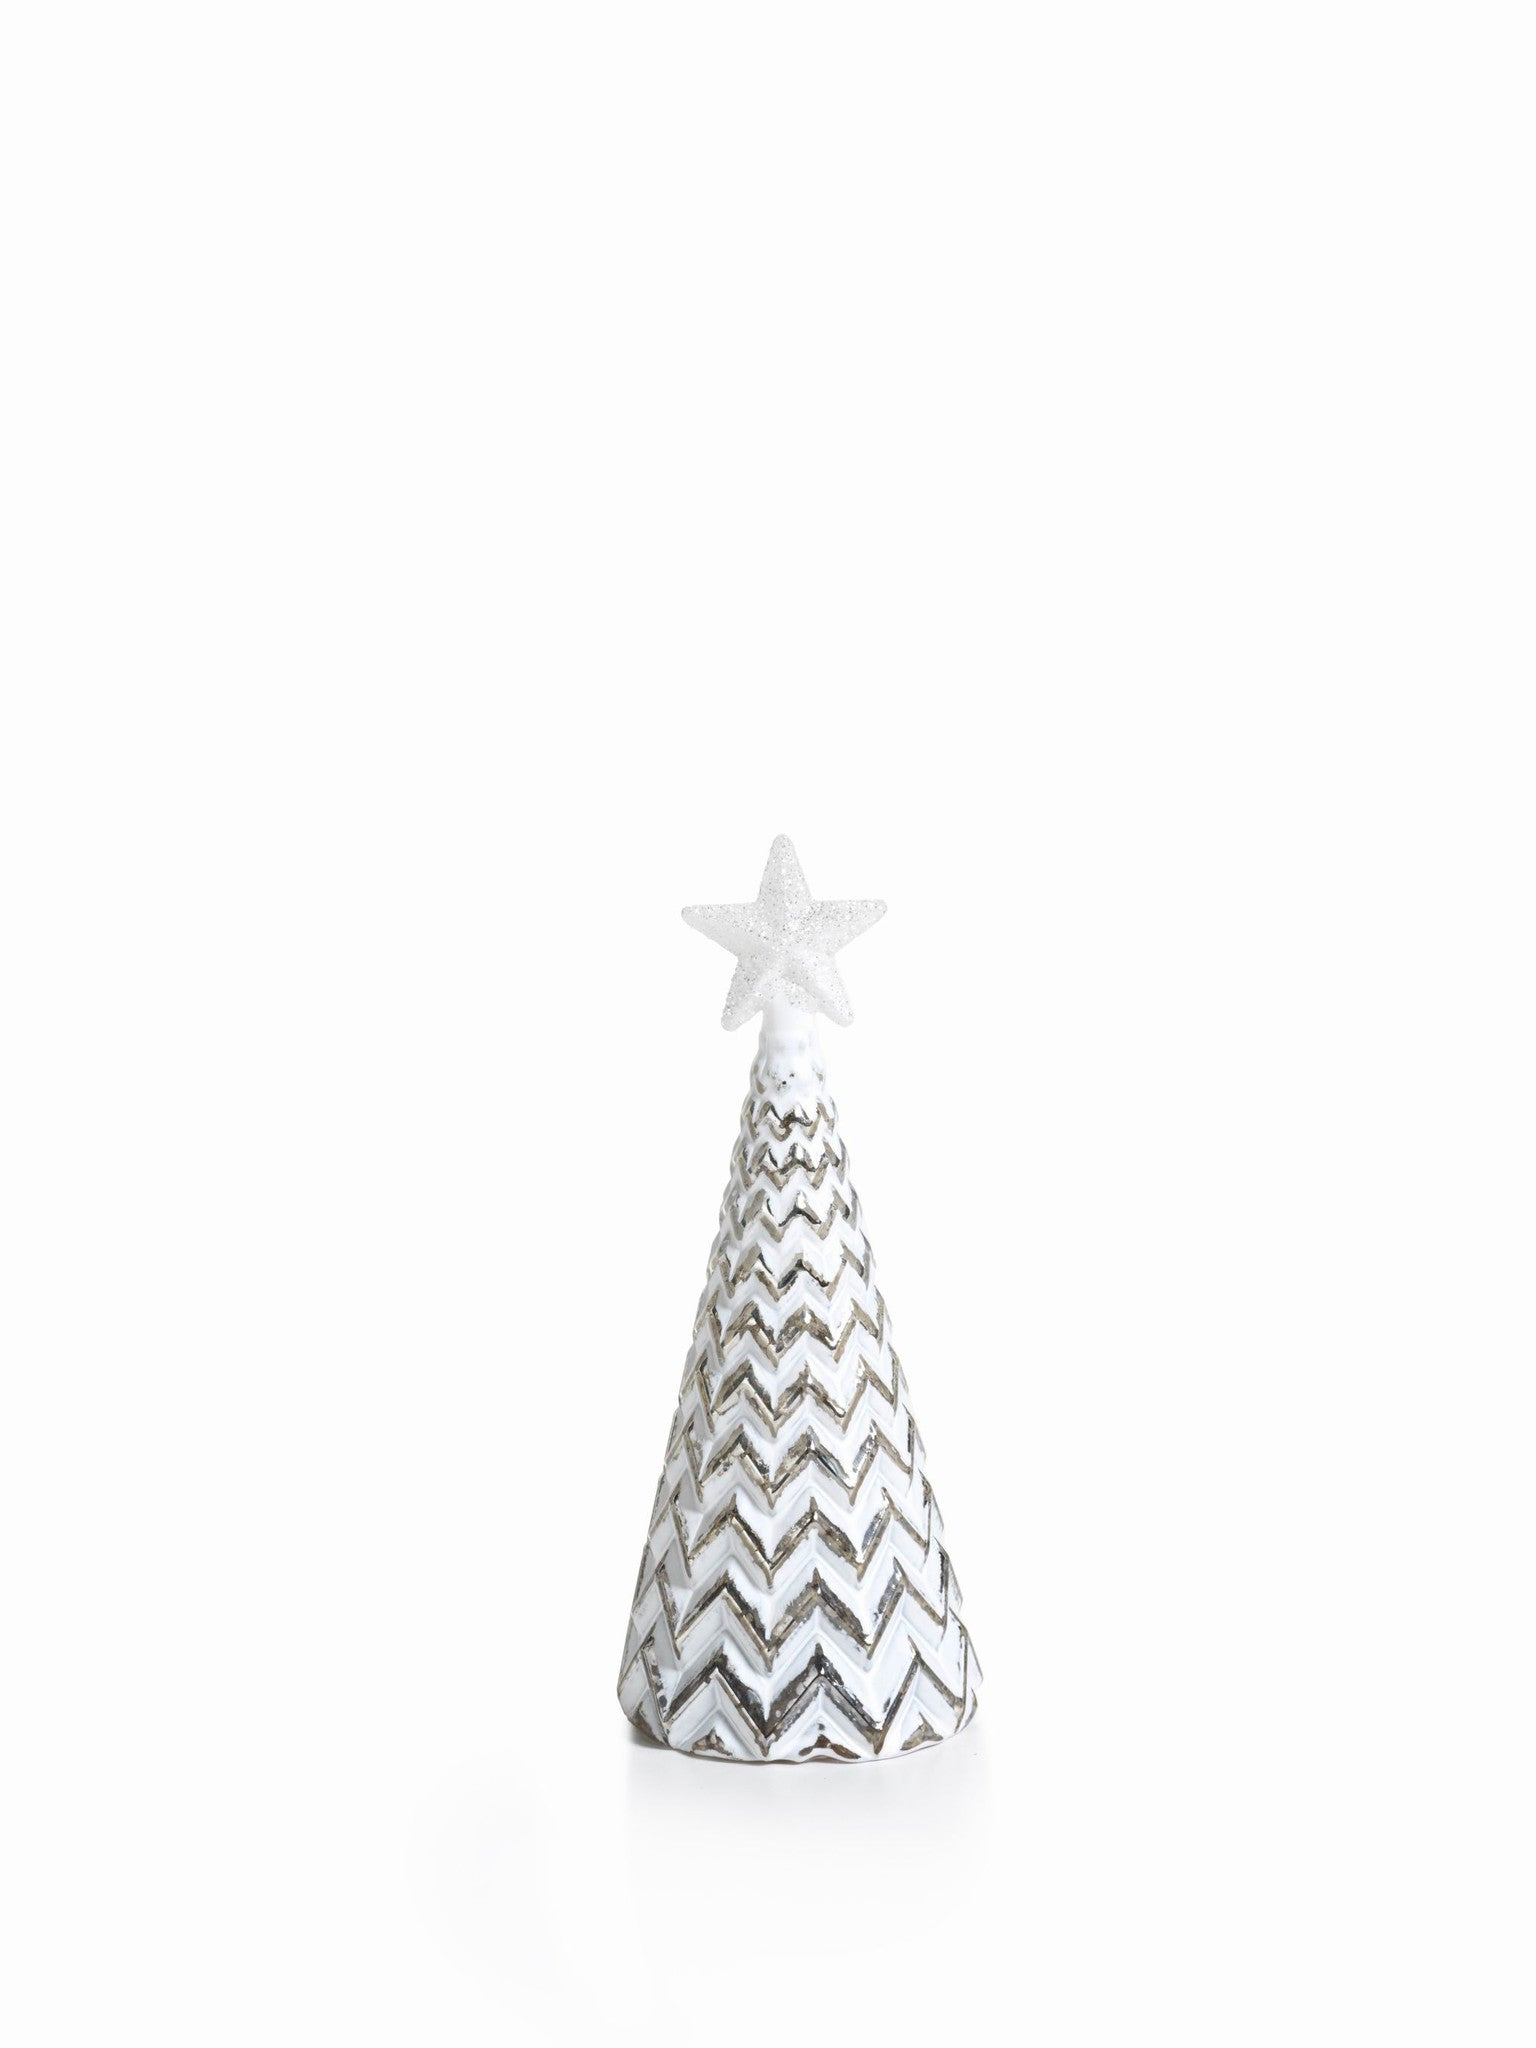 LED Glass Decorative Tree - Silver - Set of 6 - Small / ZigZag - CARLYLE AVENUE - 7